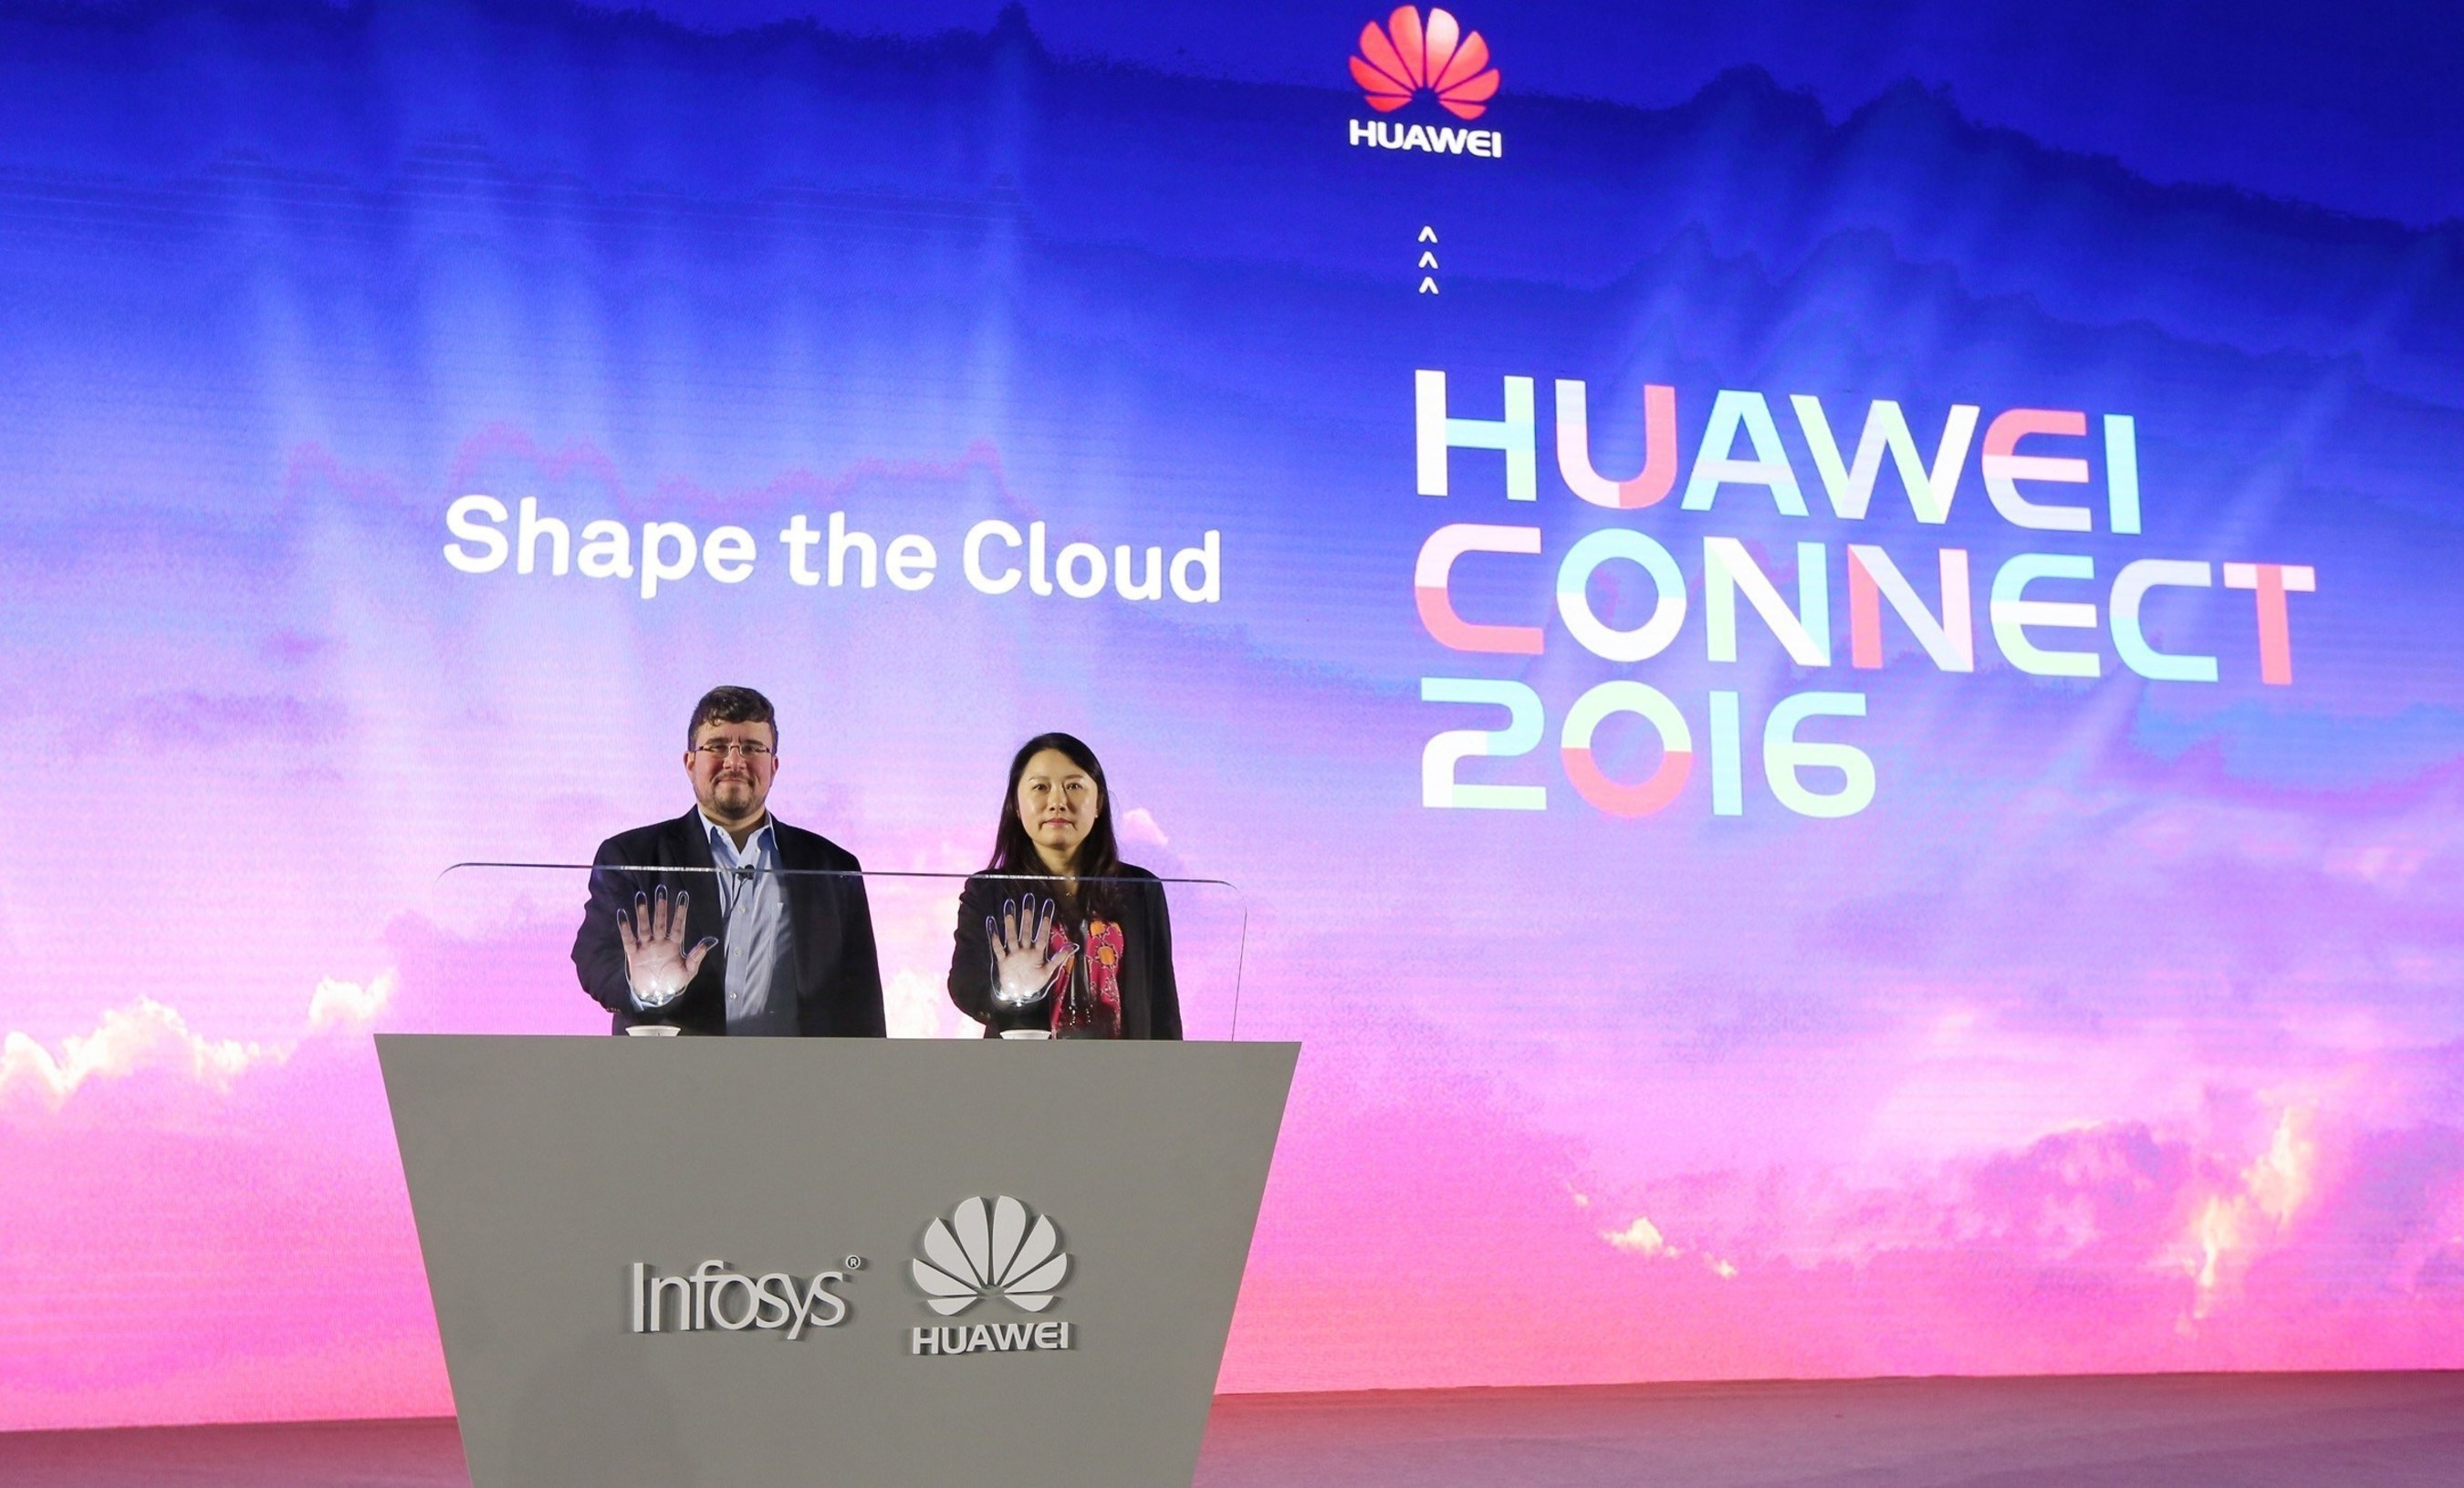 Diana Yuan and Richard Longo jointly announce the new solution